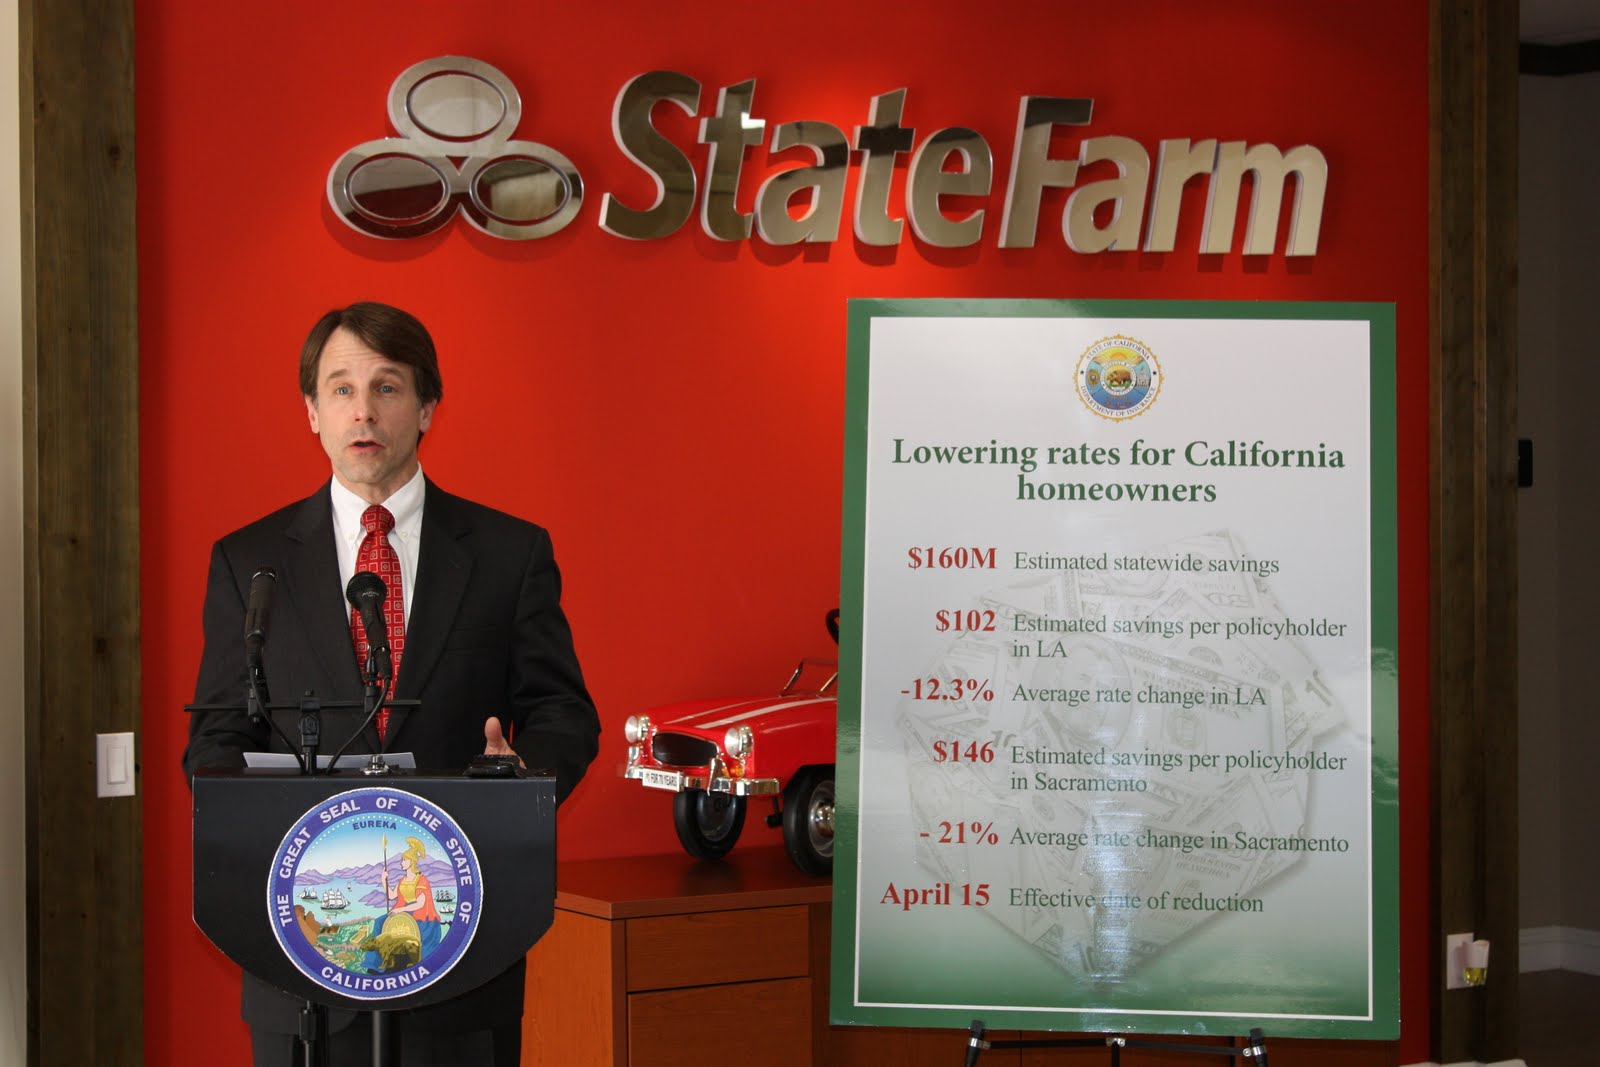 Commissioner Jones in LA announcing State Farm rate reduction for homeowners